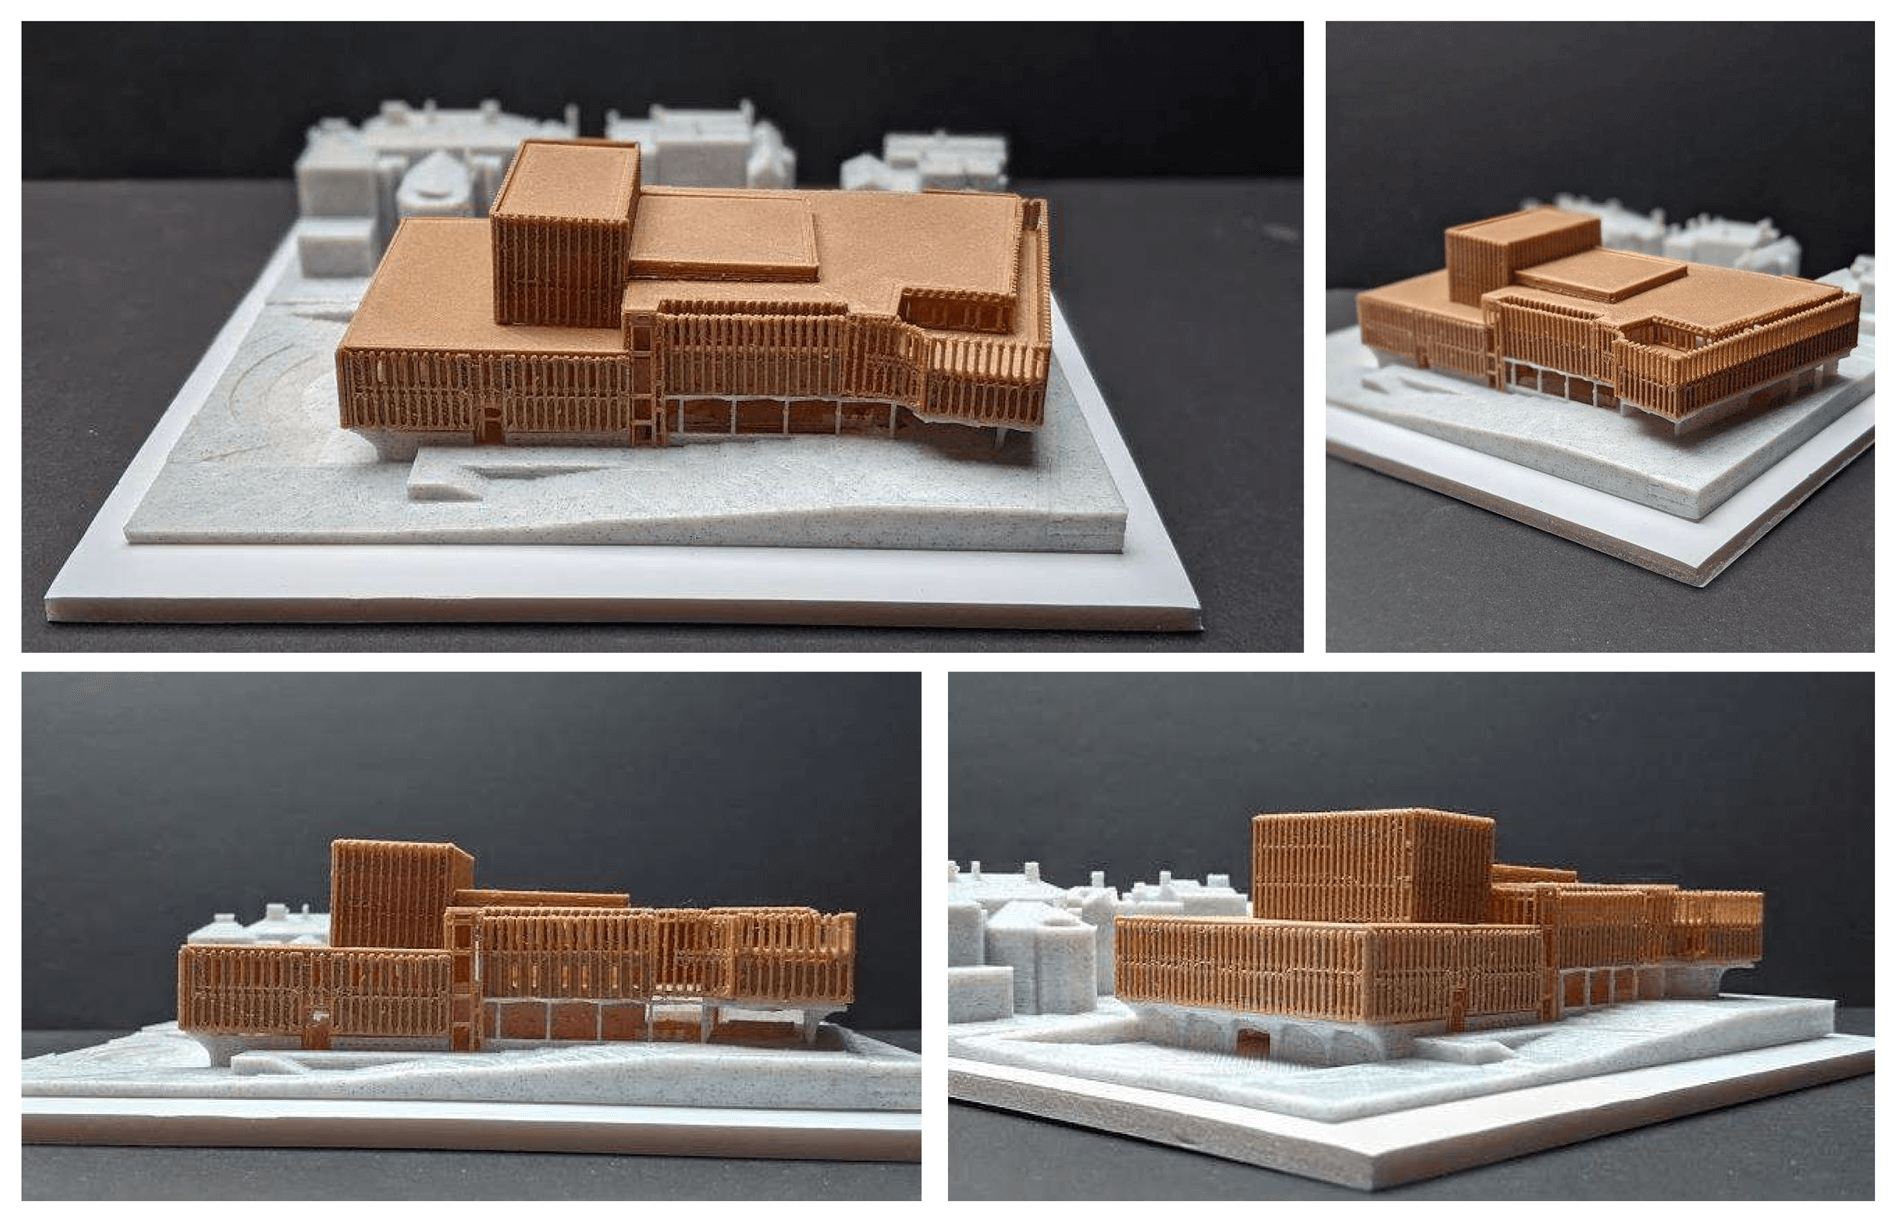 Derby Opera House Physical Model